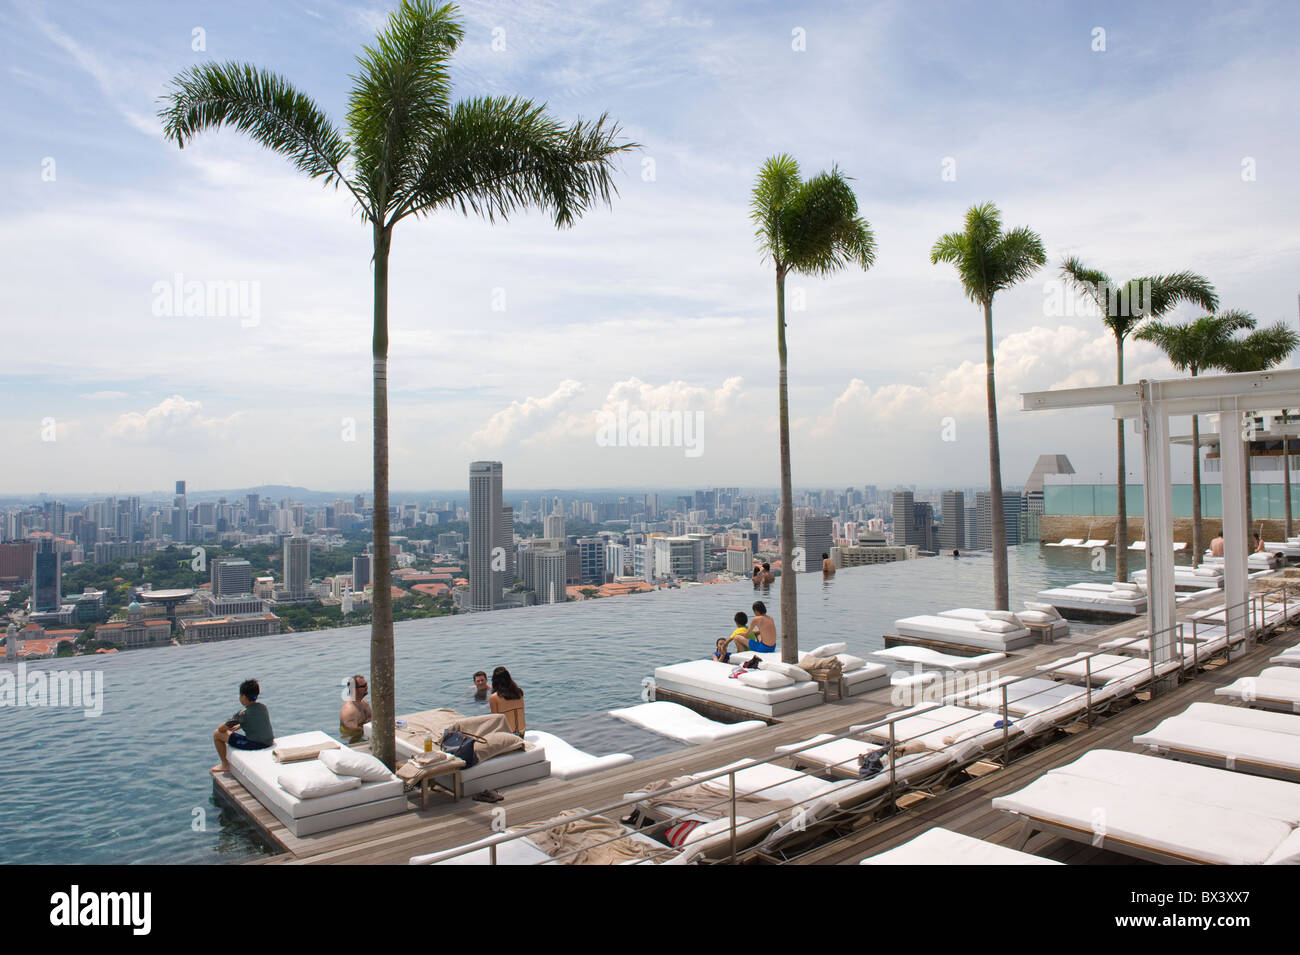 People Enjoying The Infinity Pool At The Marina Bay Sands Hotel In Stock Photo Royalty Free